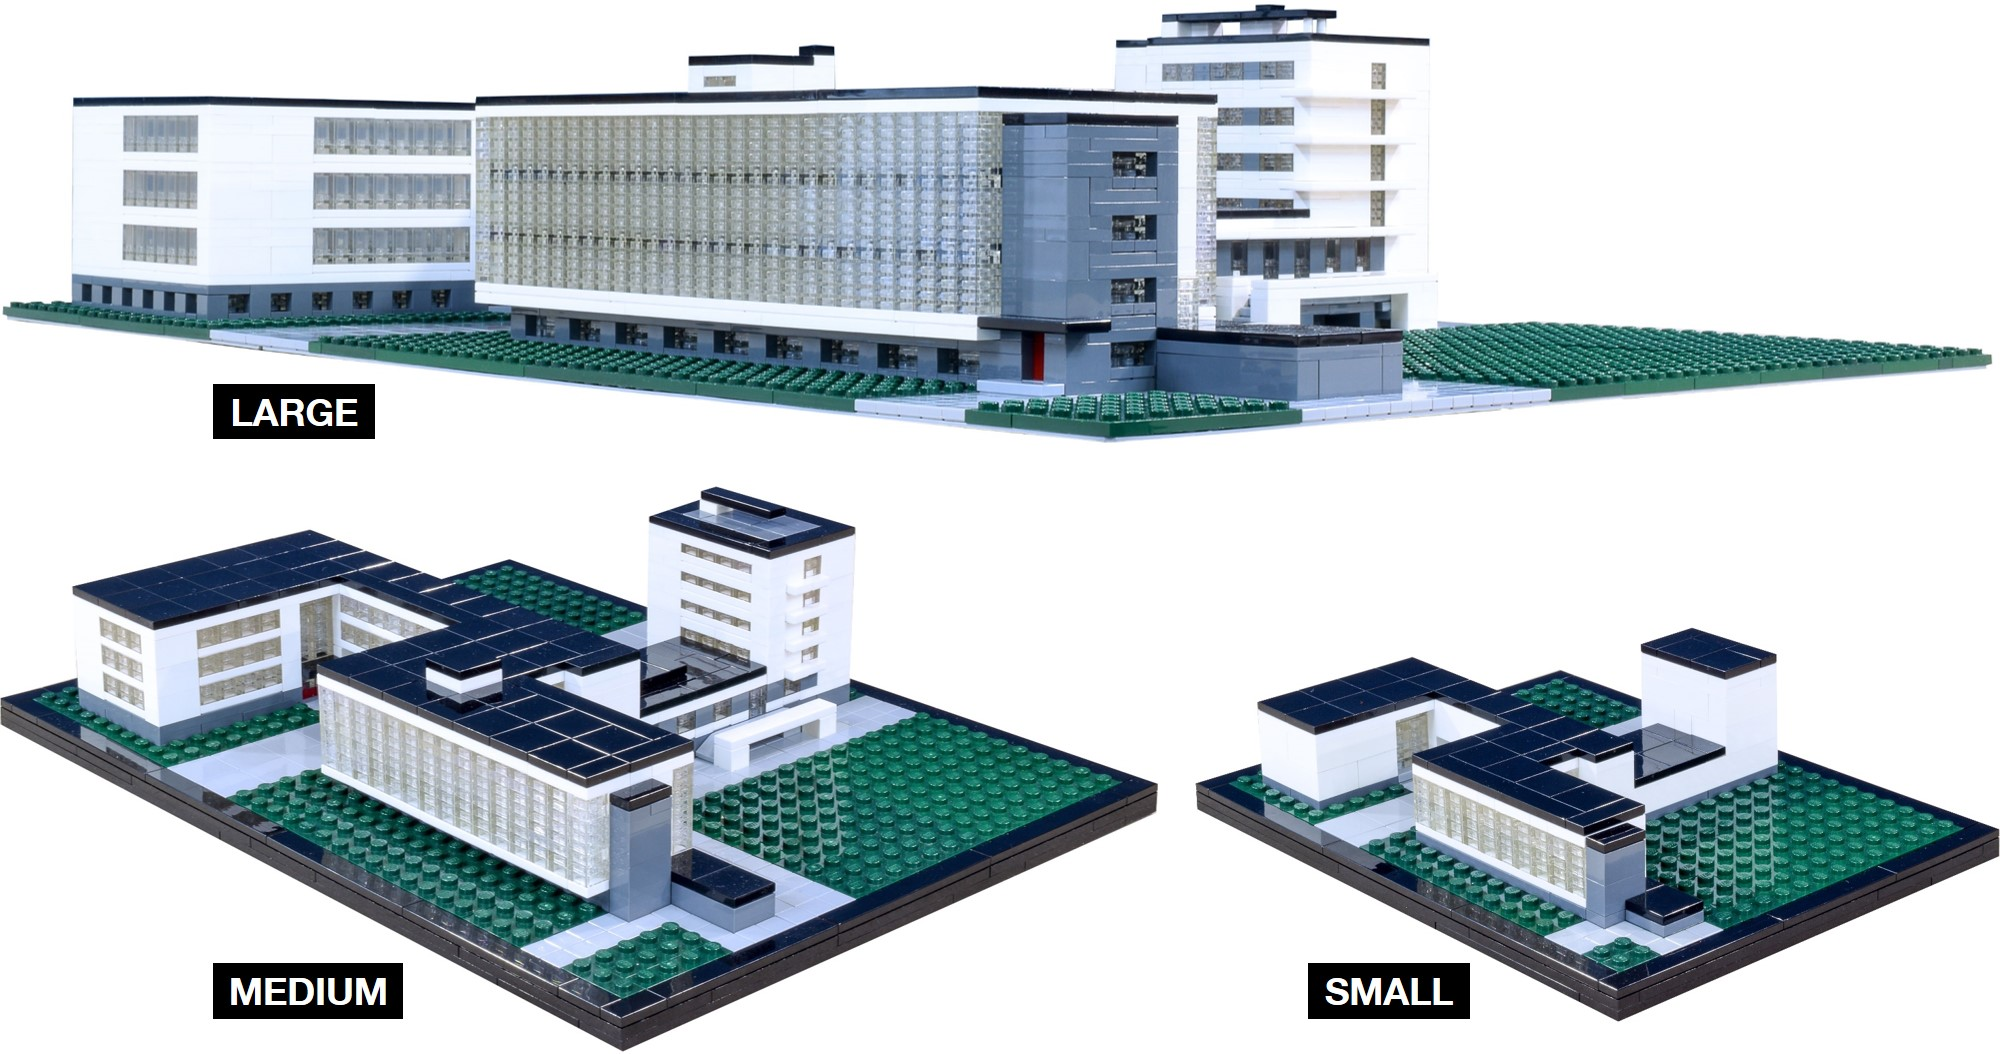 Bauhaus dessau brick architect you can clearly see how a larger scale allows for more detail malvernweather Images